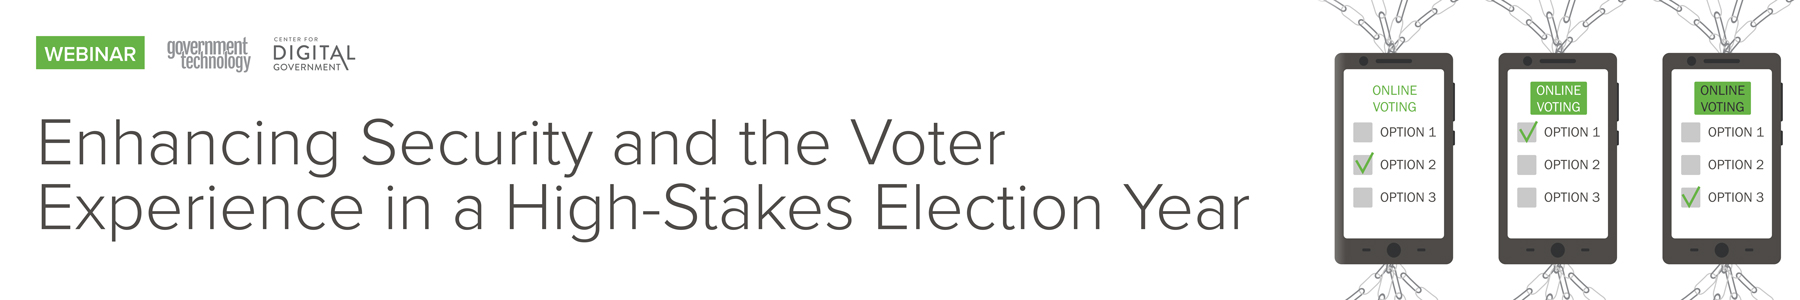 Enhancing Security and the Voter Experience in a High-Stakes Election Year